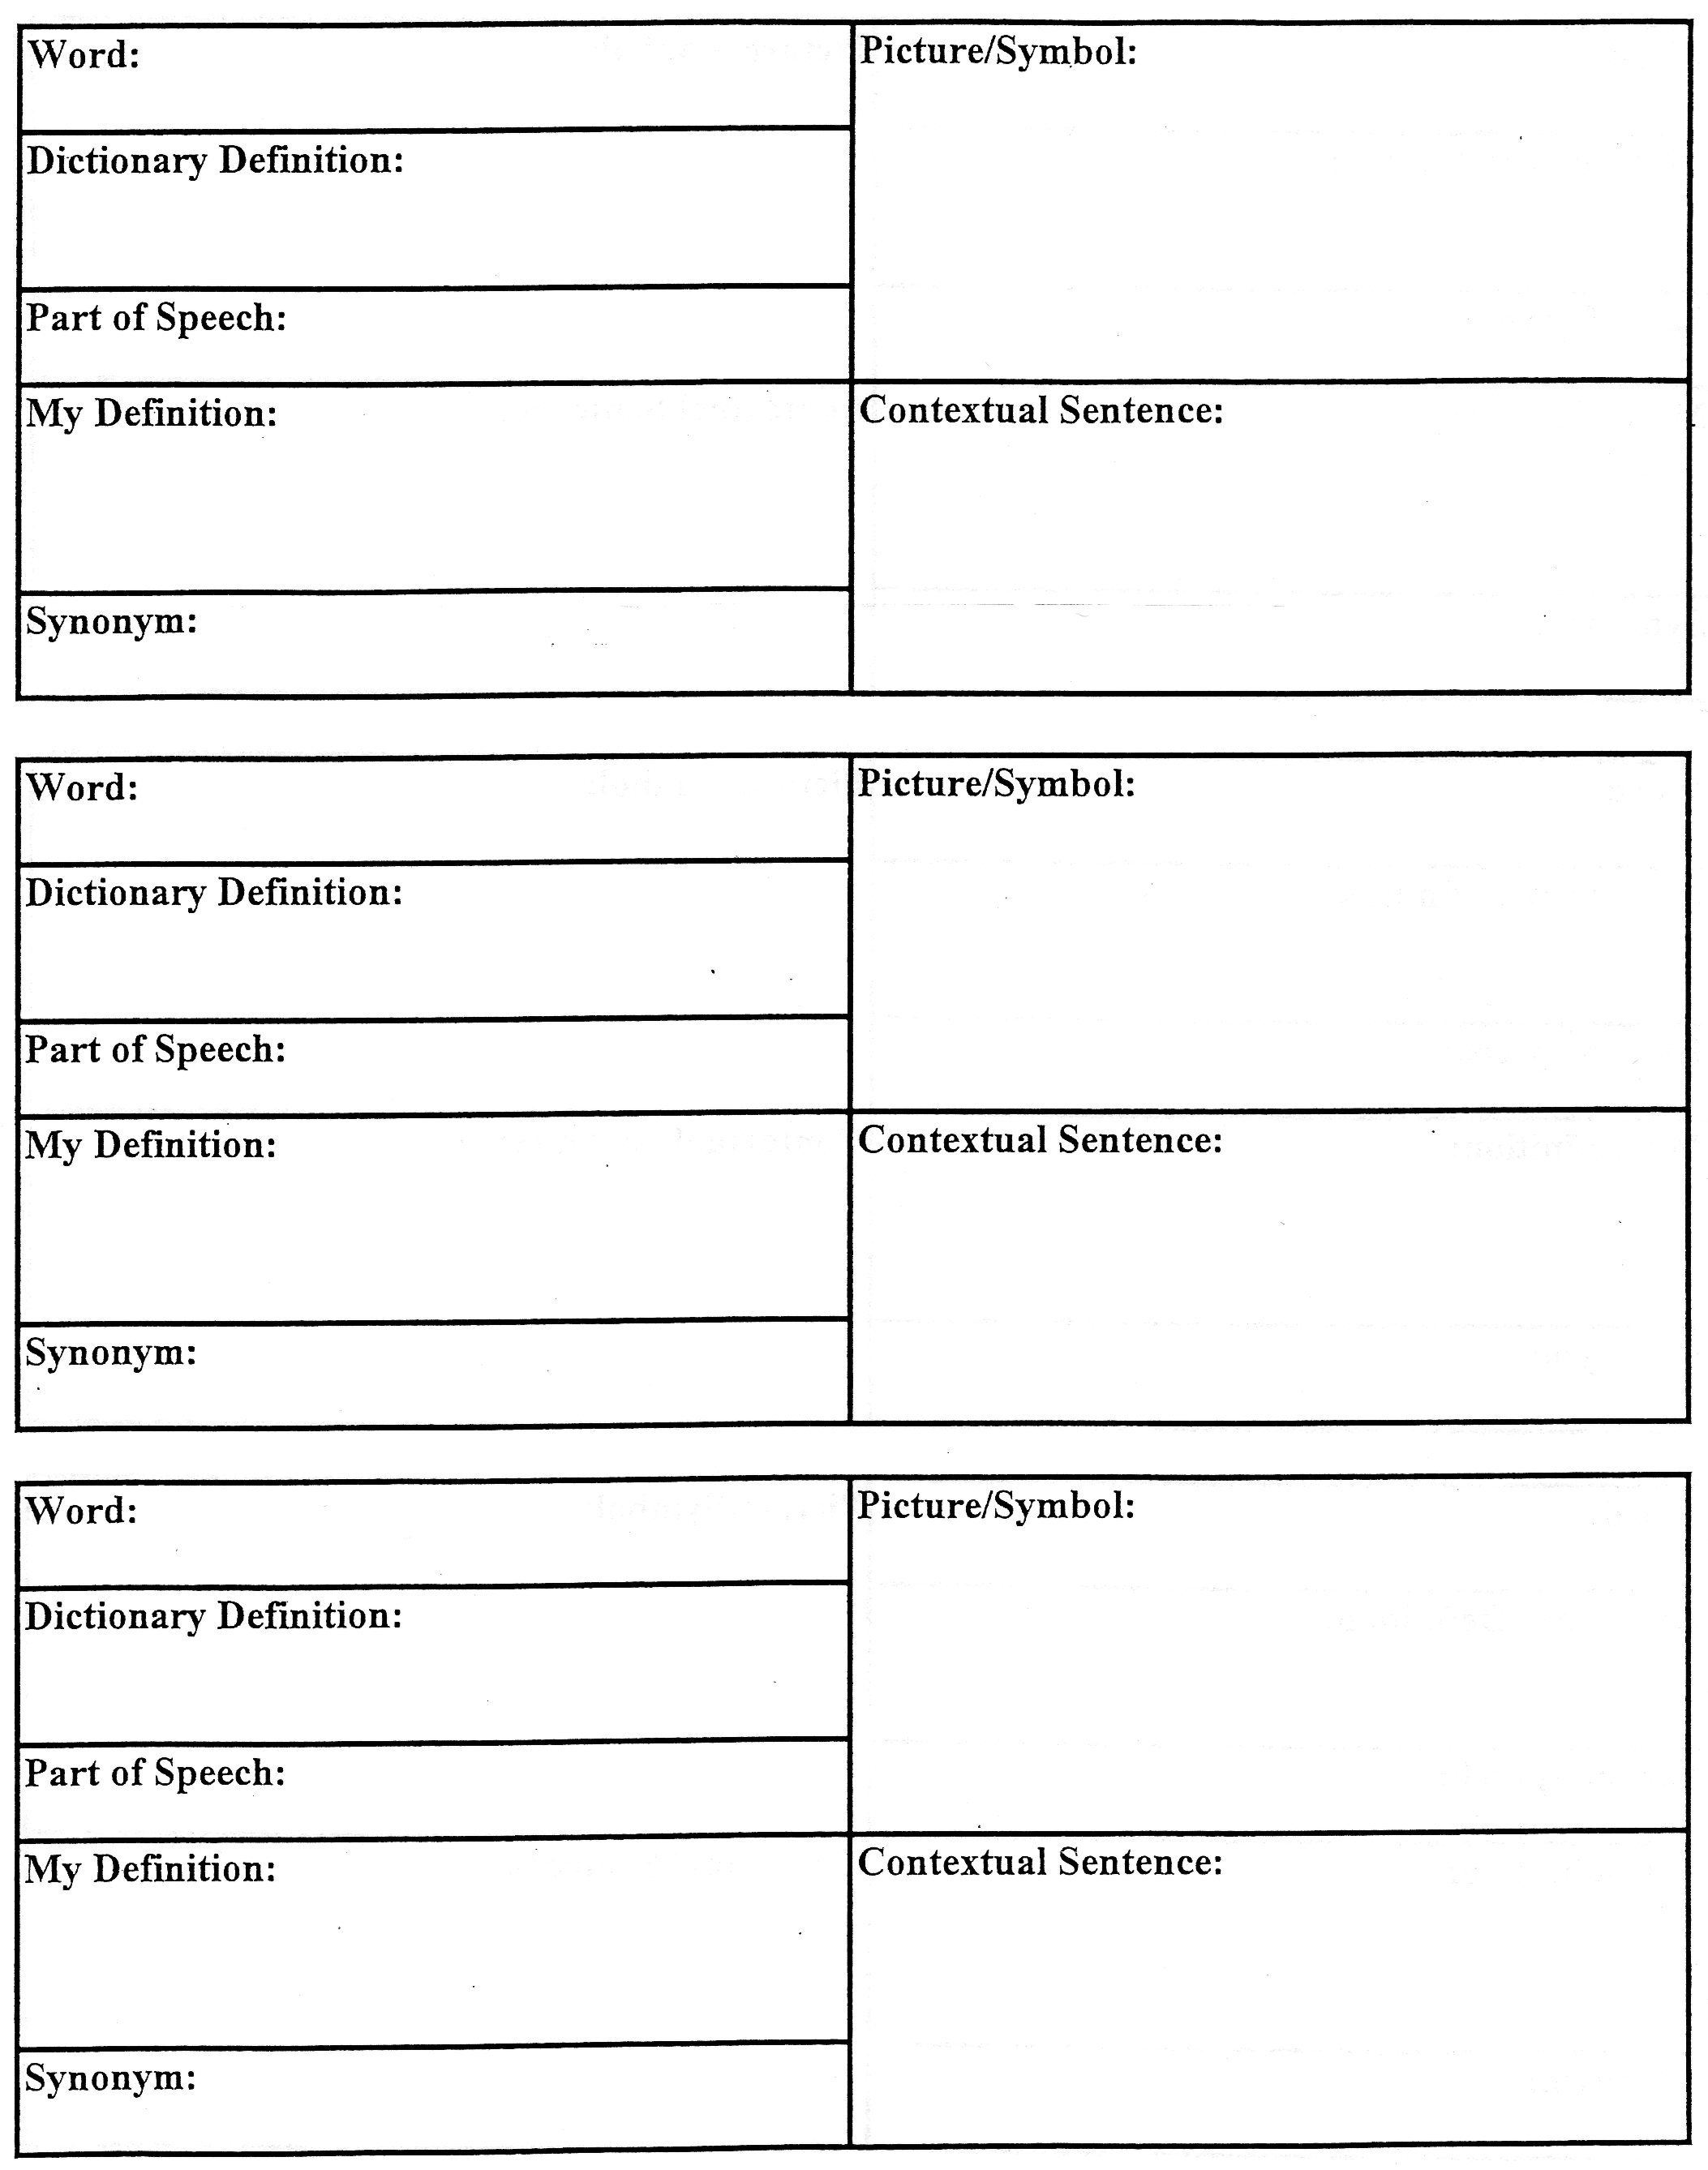 Worksheets American Literature Worksheets american literature english ii resources mrs heberts vocabulary organizer jpg